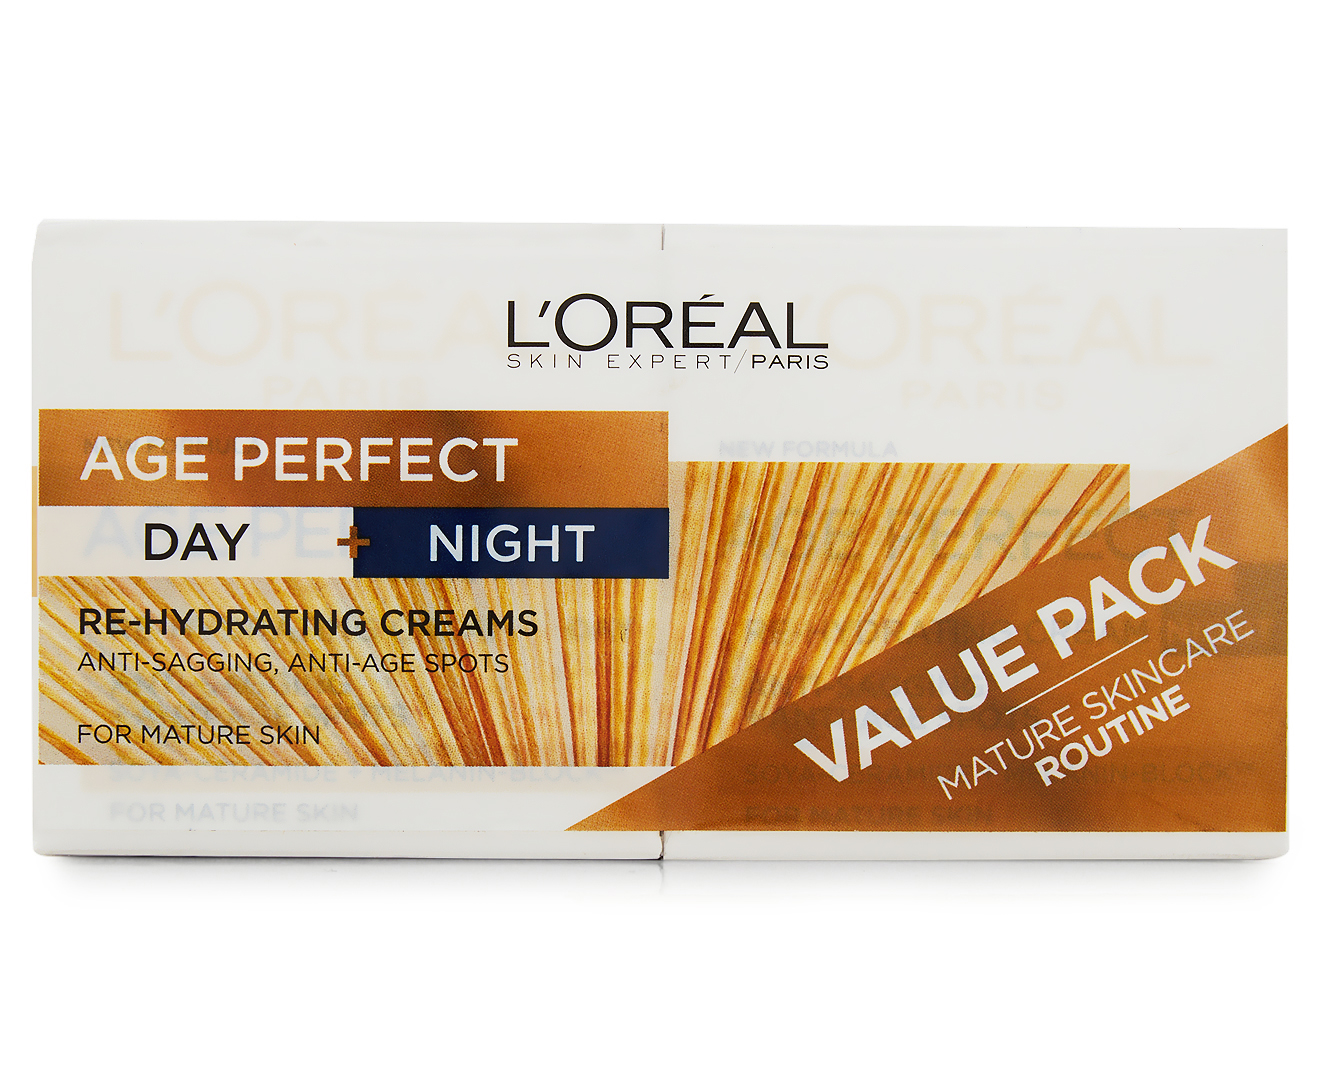 L'Oreal Age Perfect Day & Night Duo Pack